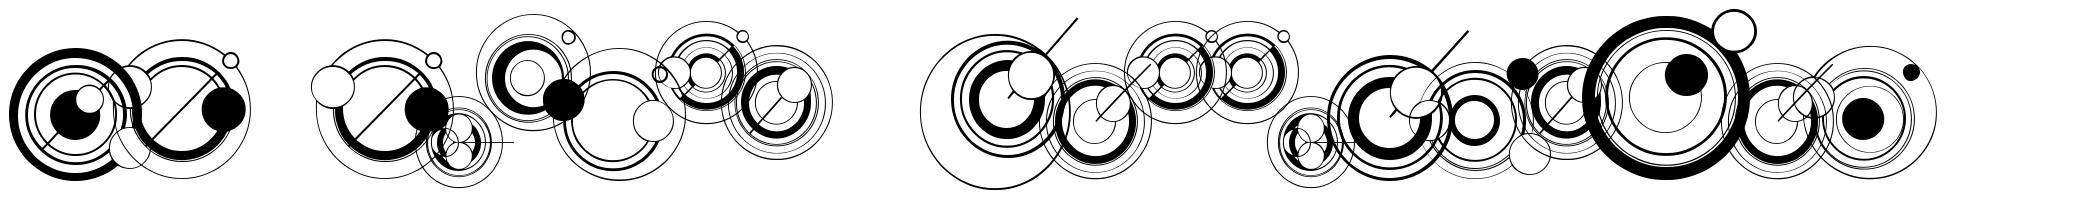 WS Simple Gallifreyan шрифт